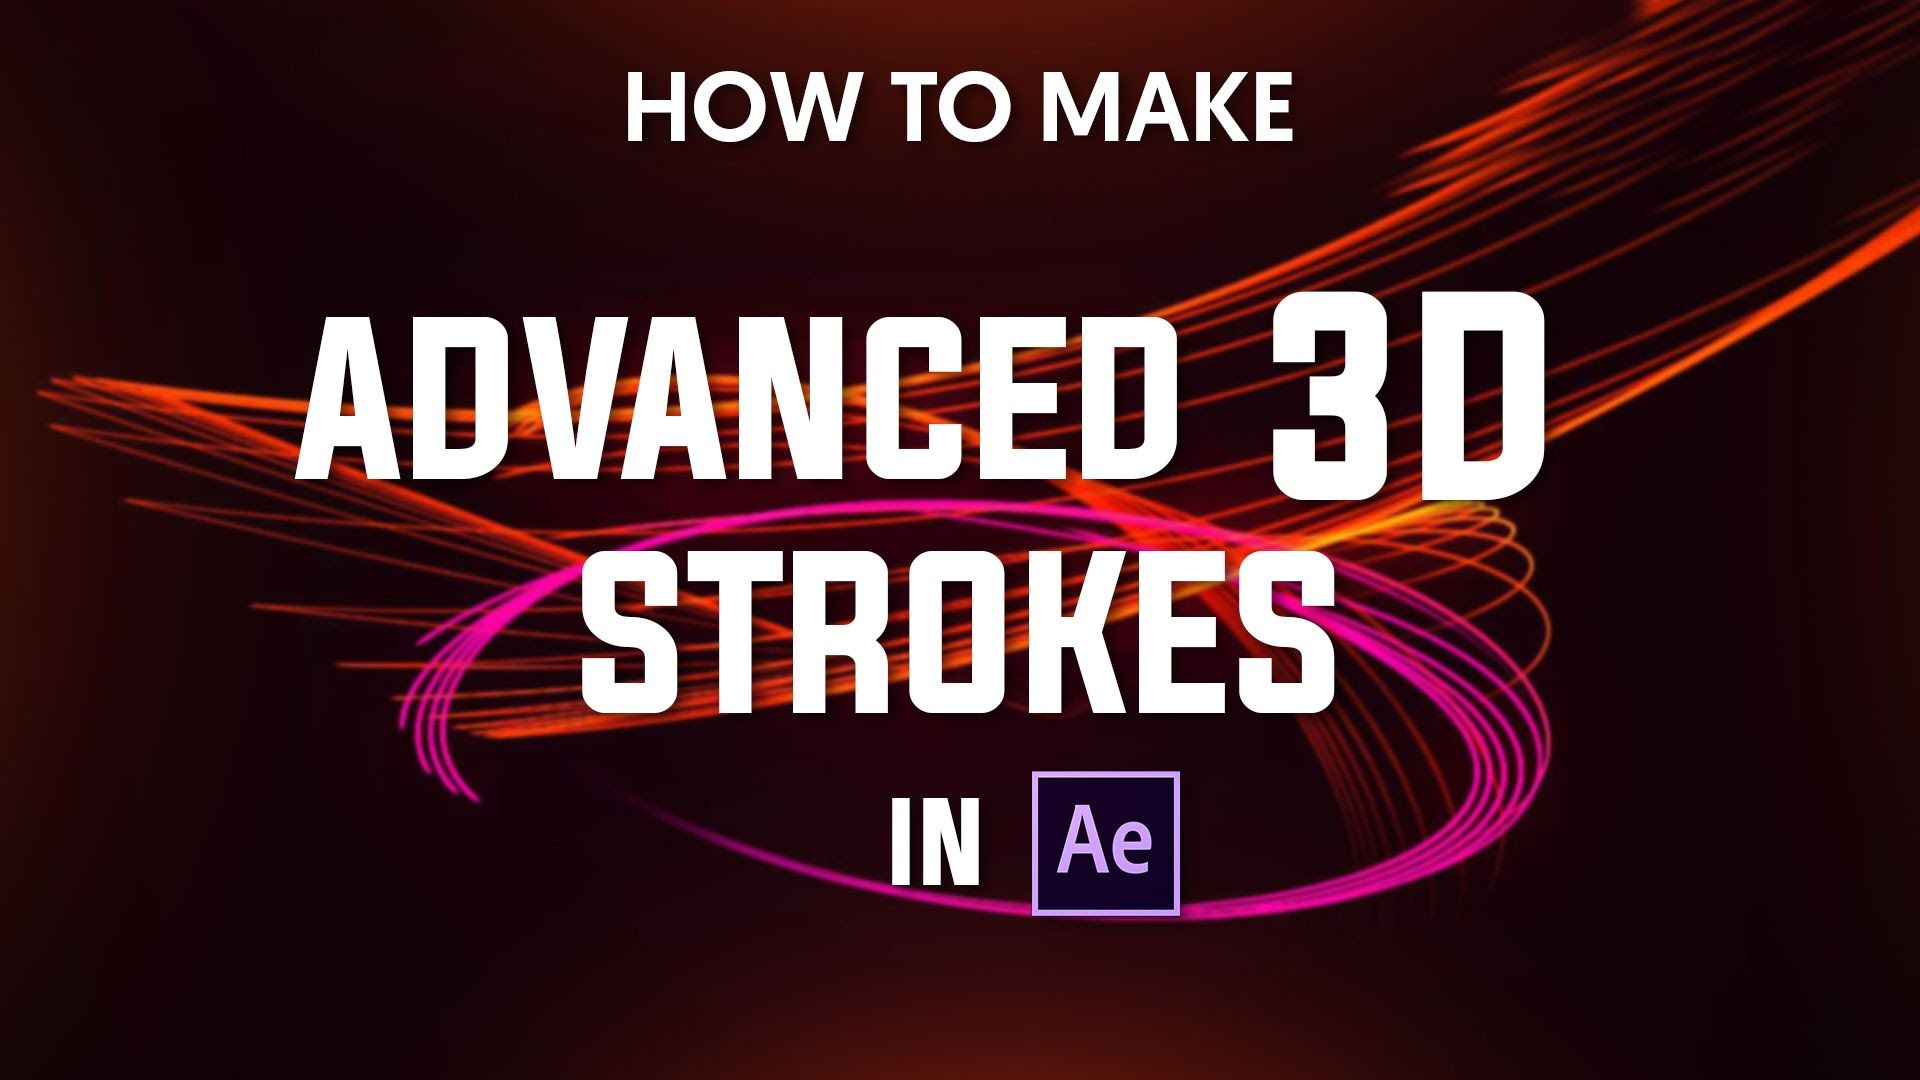 3d poster design tutorial - After Effects Advanced 3d Strokes Tutorial 23 By Dope Motions